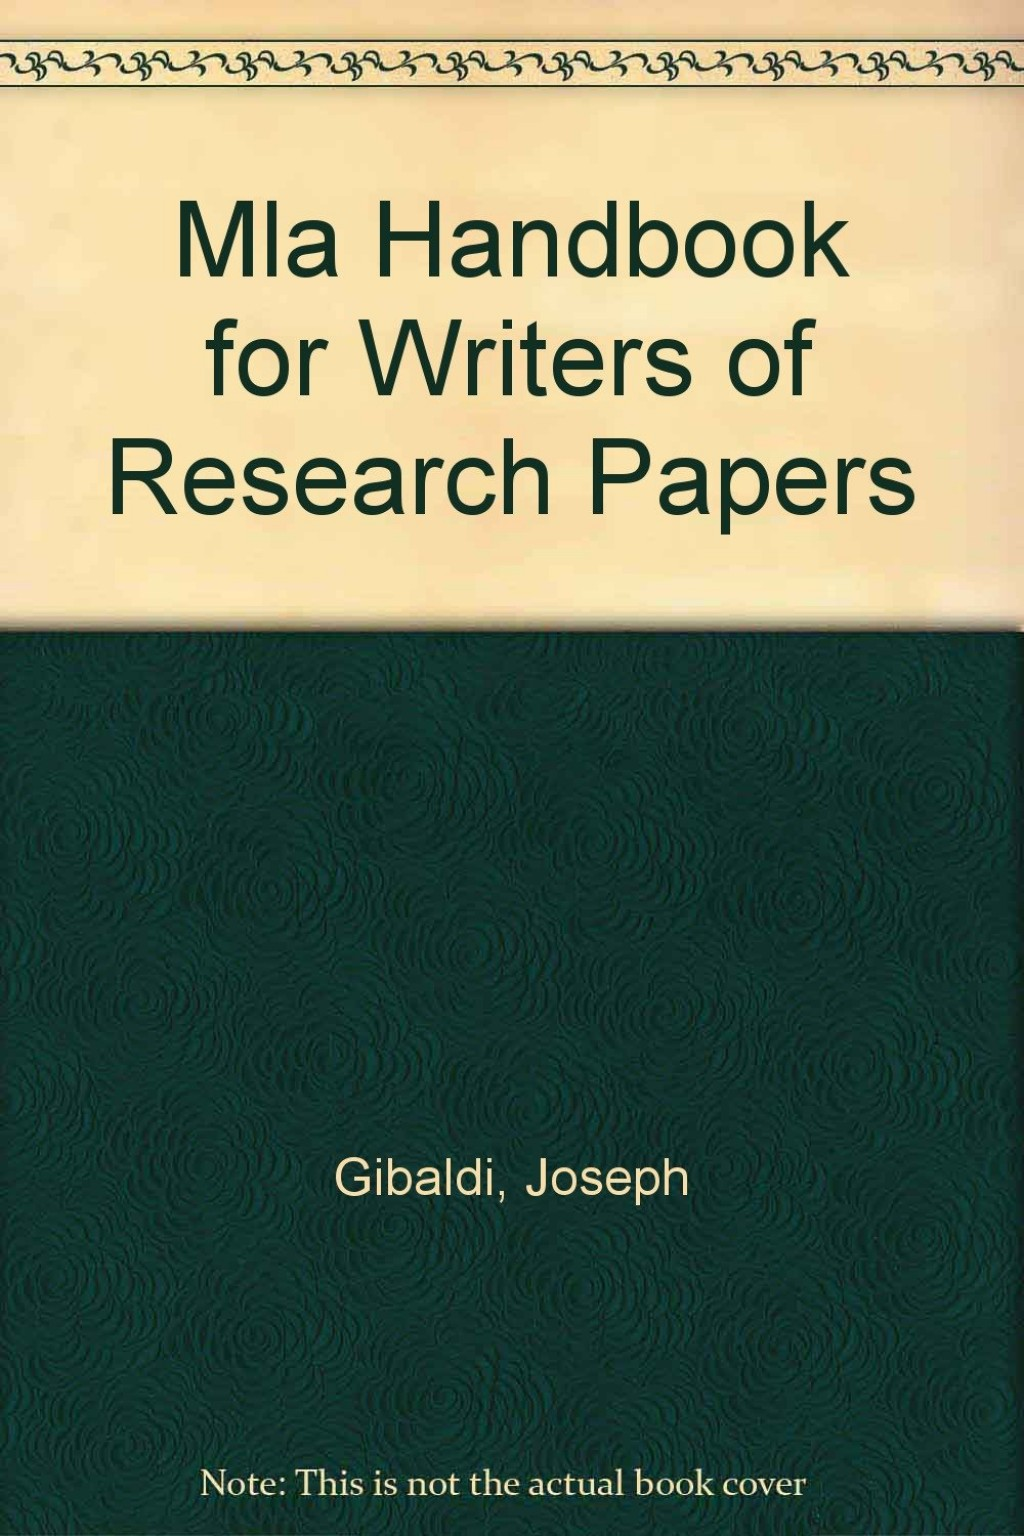 009 Mla Handbook For Writers Of Research Papers 8th Edition Paper Unique Pdf Free Download Large